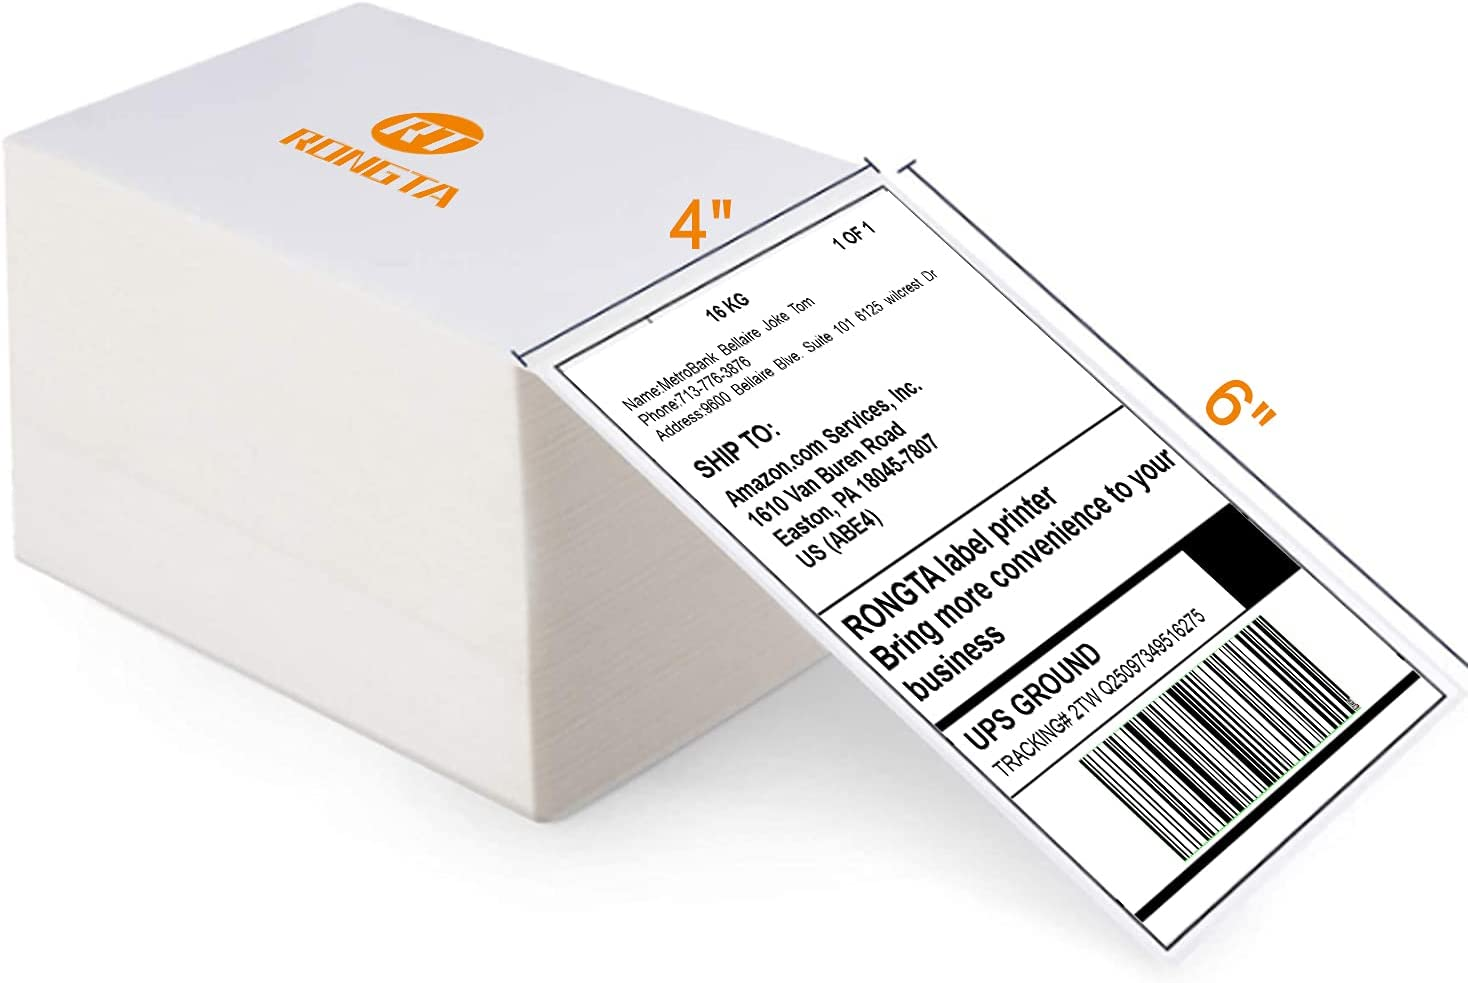 Rongta Thermal Label Printer 4x6 Shipping Label Printer for Small Business Commercial Grade Direct High Speed Compatible with Etsy, Ebay,FedEx,UPS,Shopify, USPS Etc (500PCS 4x6 Thermal Label): Electronics